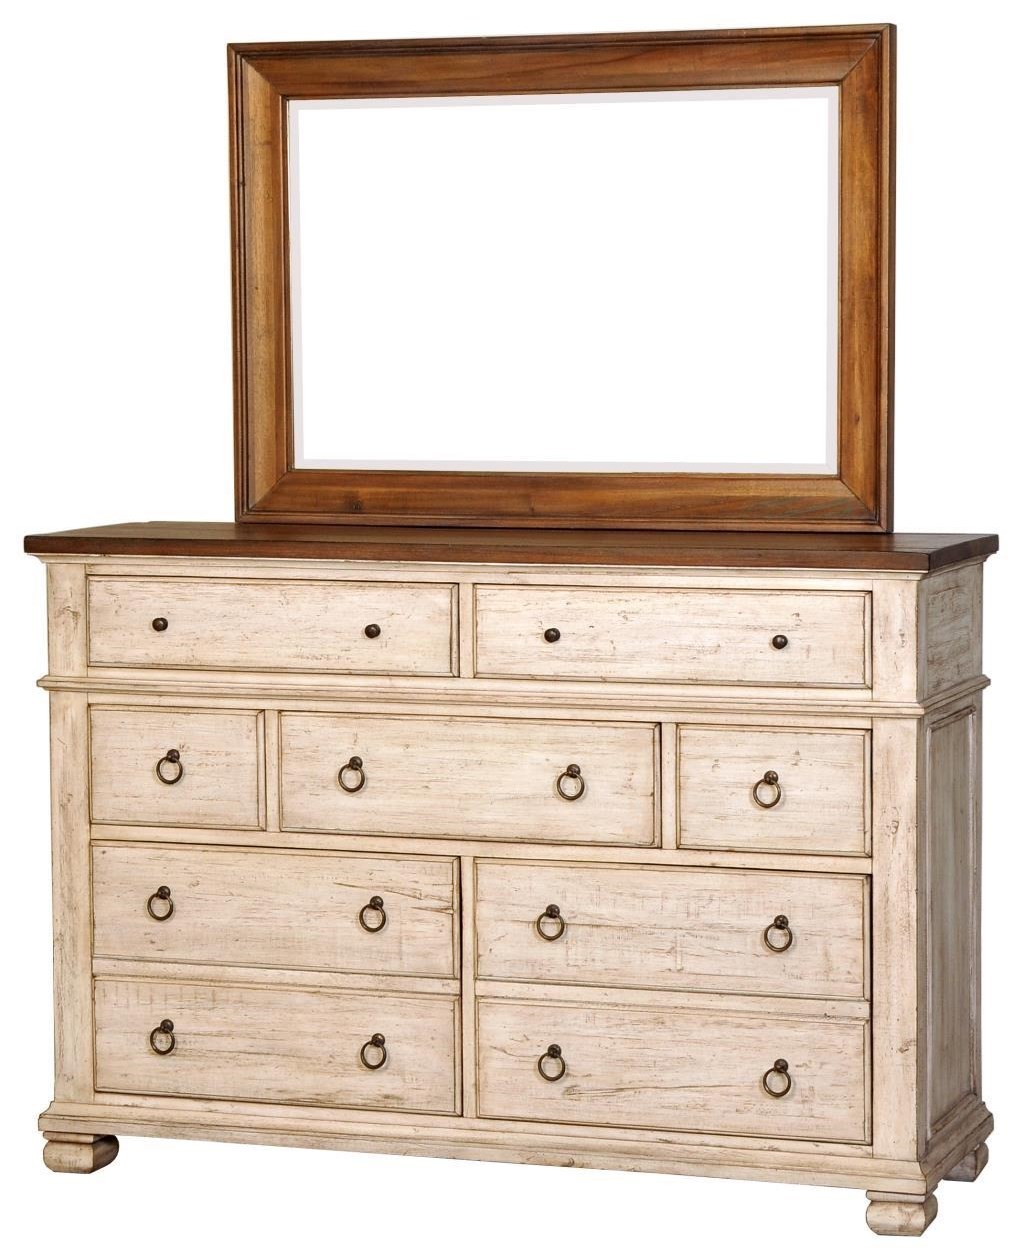 Belmont Dresser and Mirror Combo by Napa Furniture Designs at Johnny Janosik